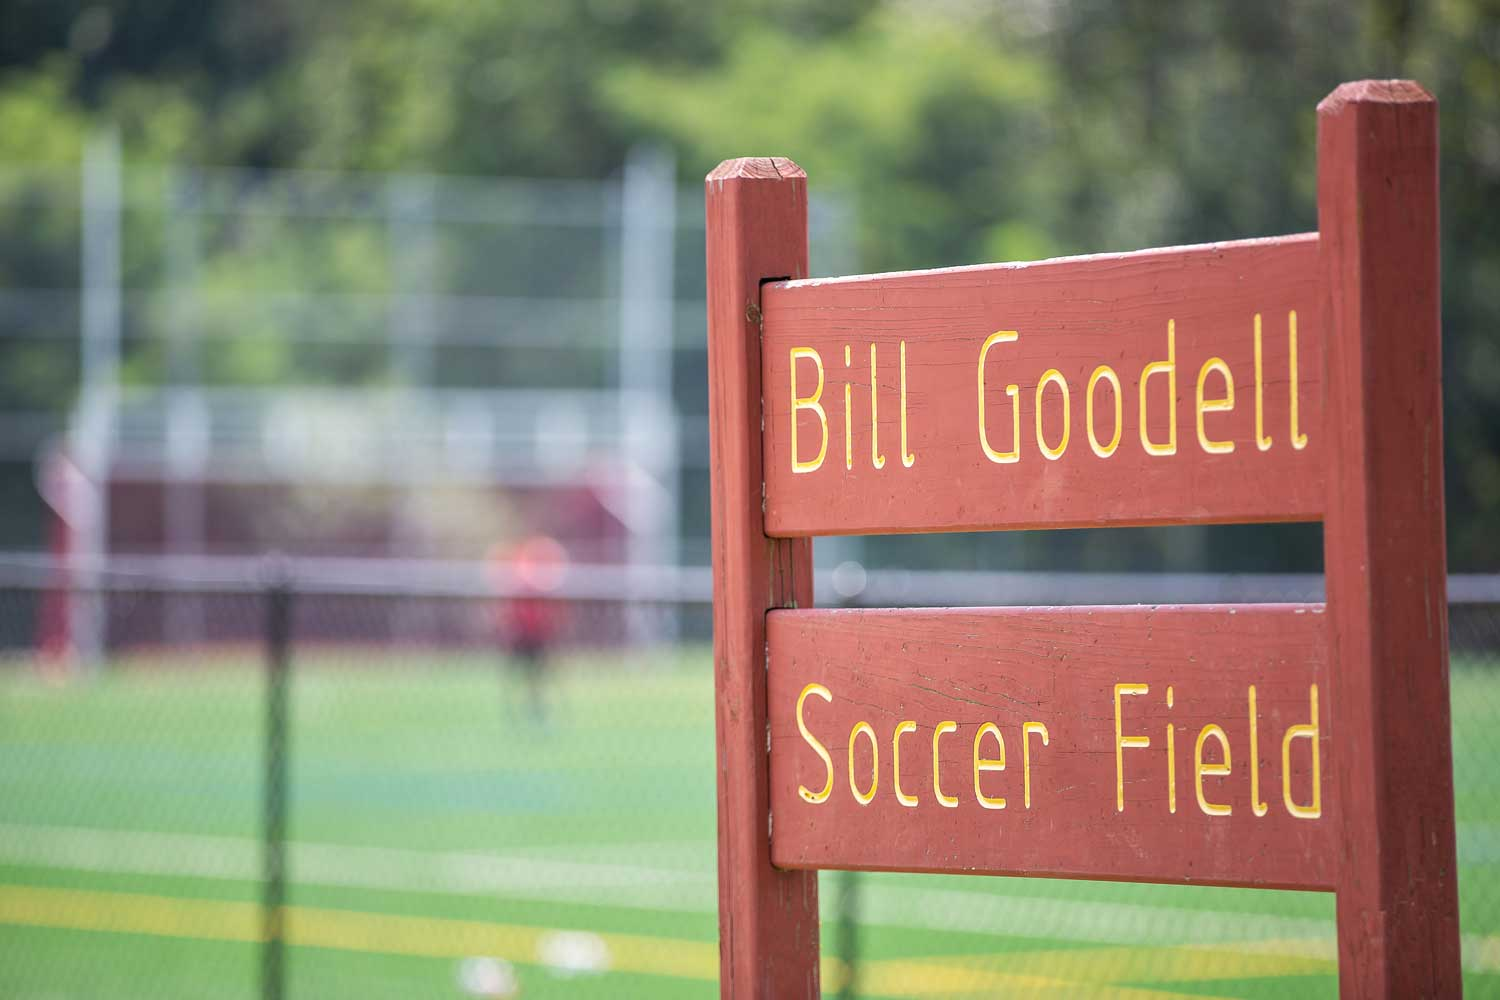 Soccer field 5 minutes from Barcroft View Apartments in Falls Church, VA